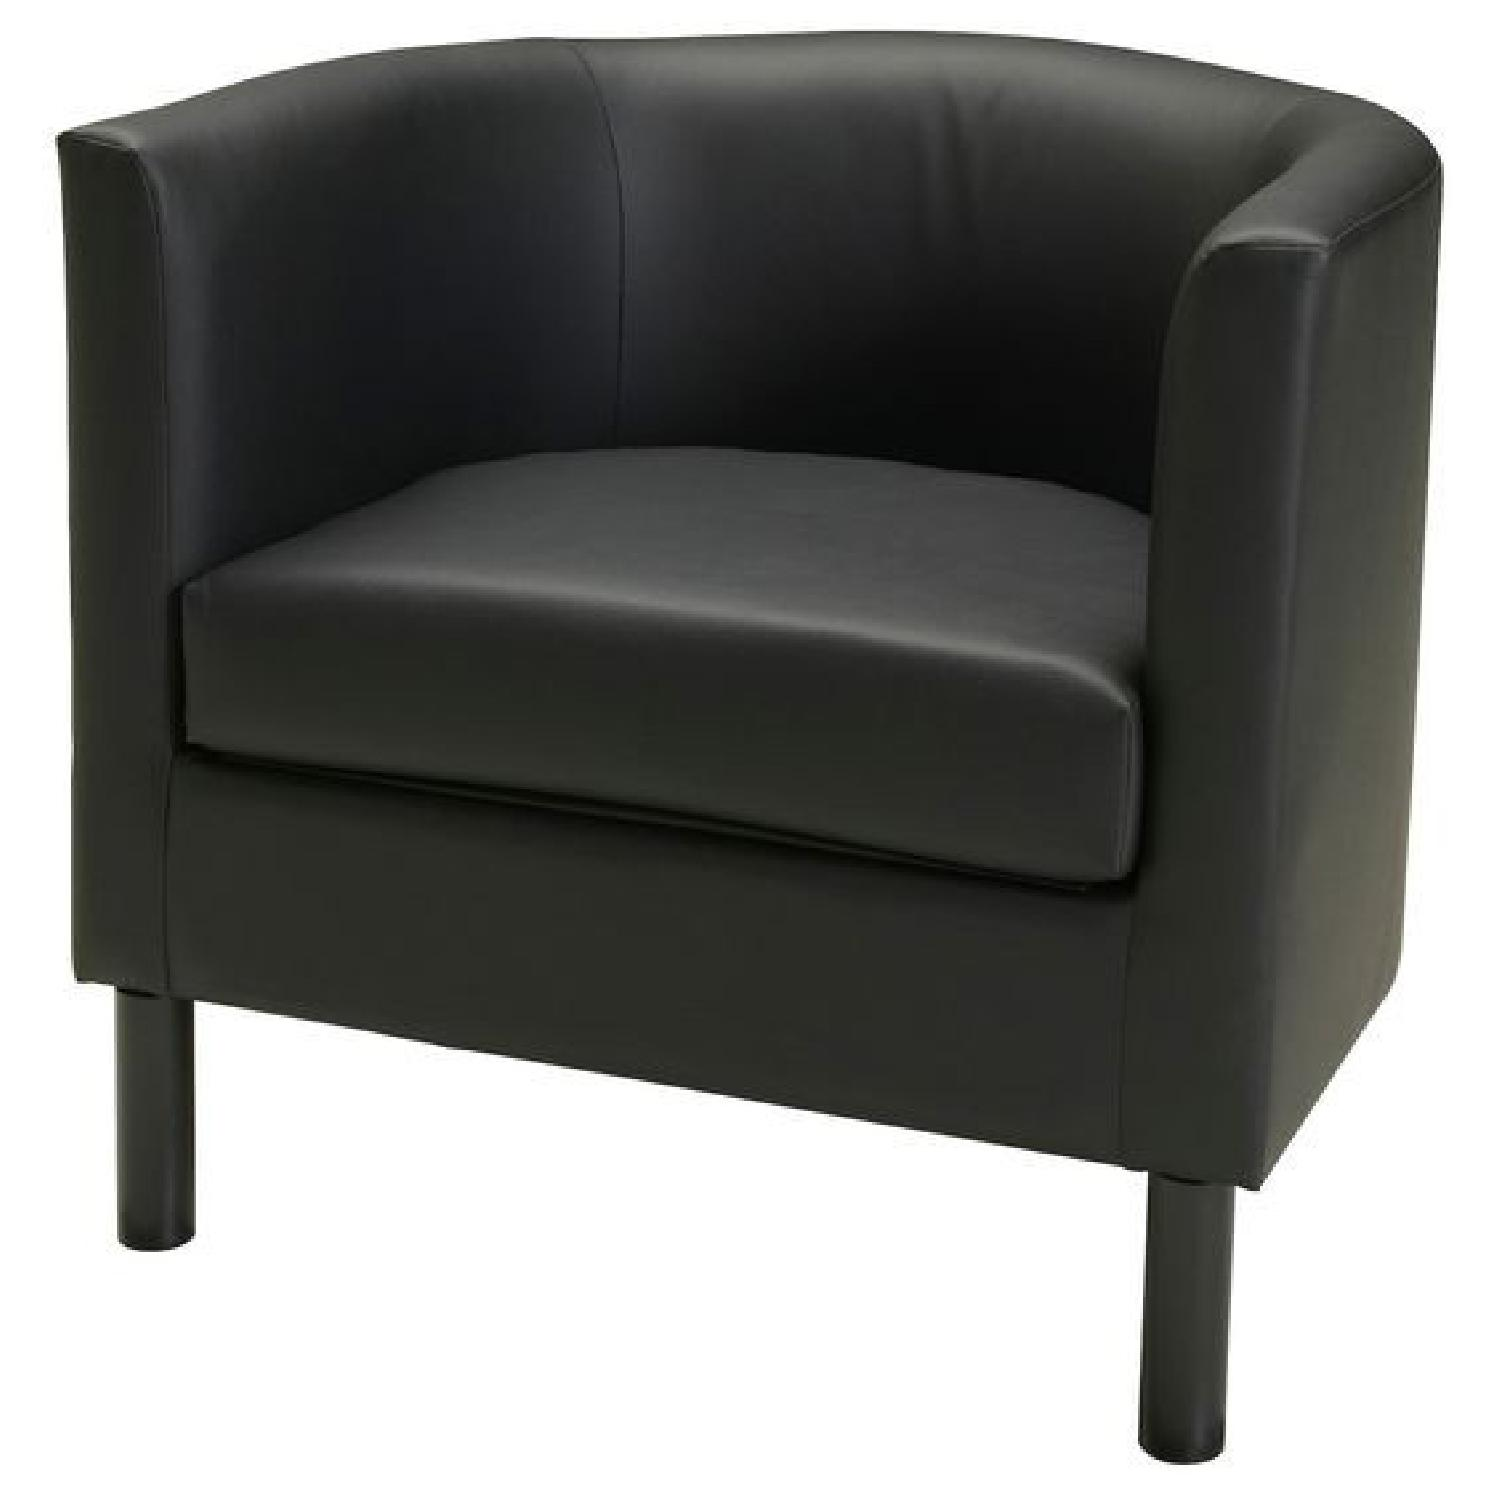 Ikea Black Faux Leather Armchairs - image-4